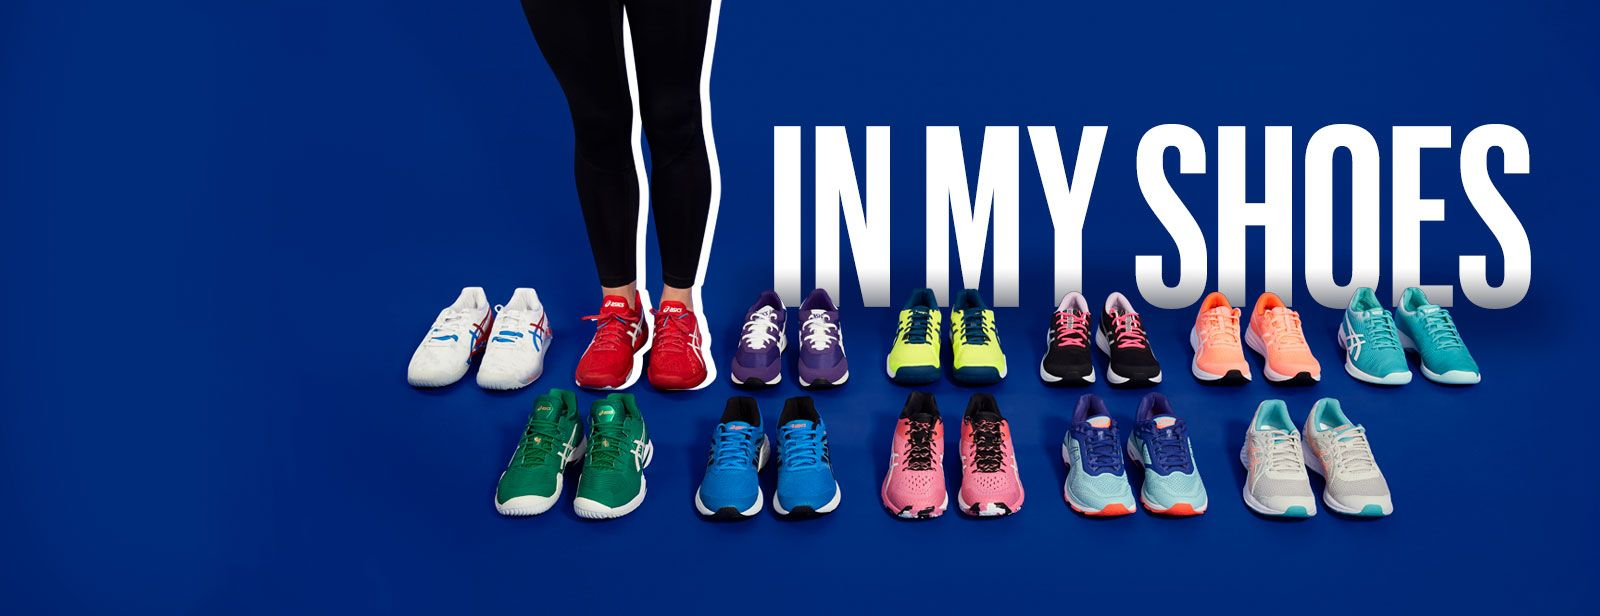 In My Shoes by ASICS